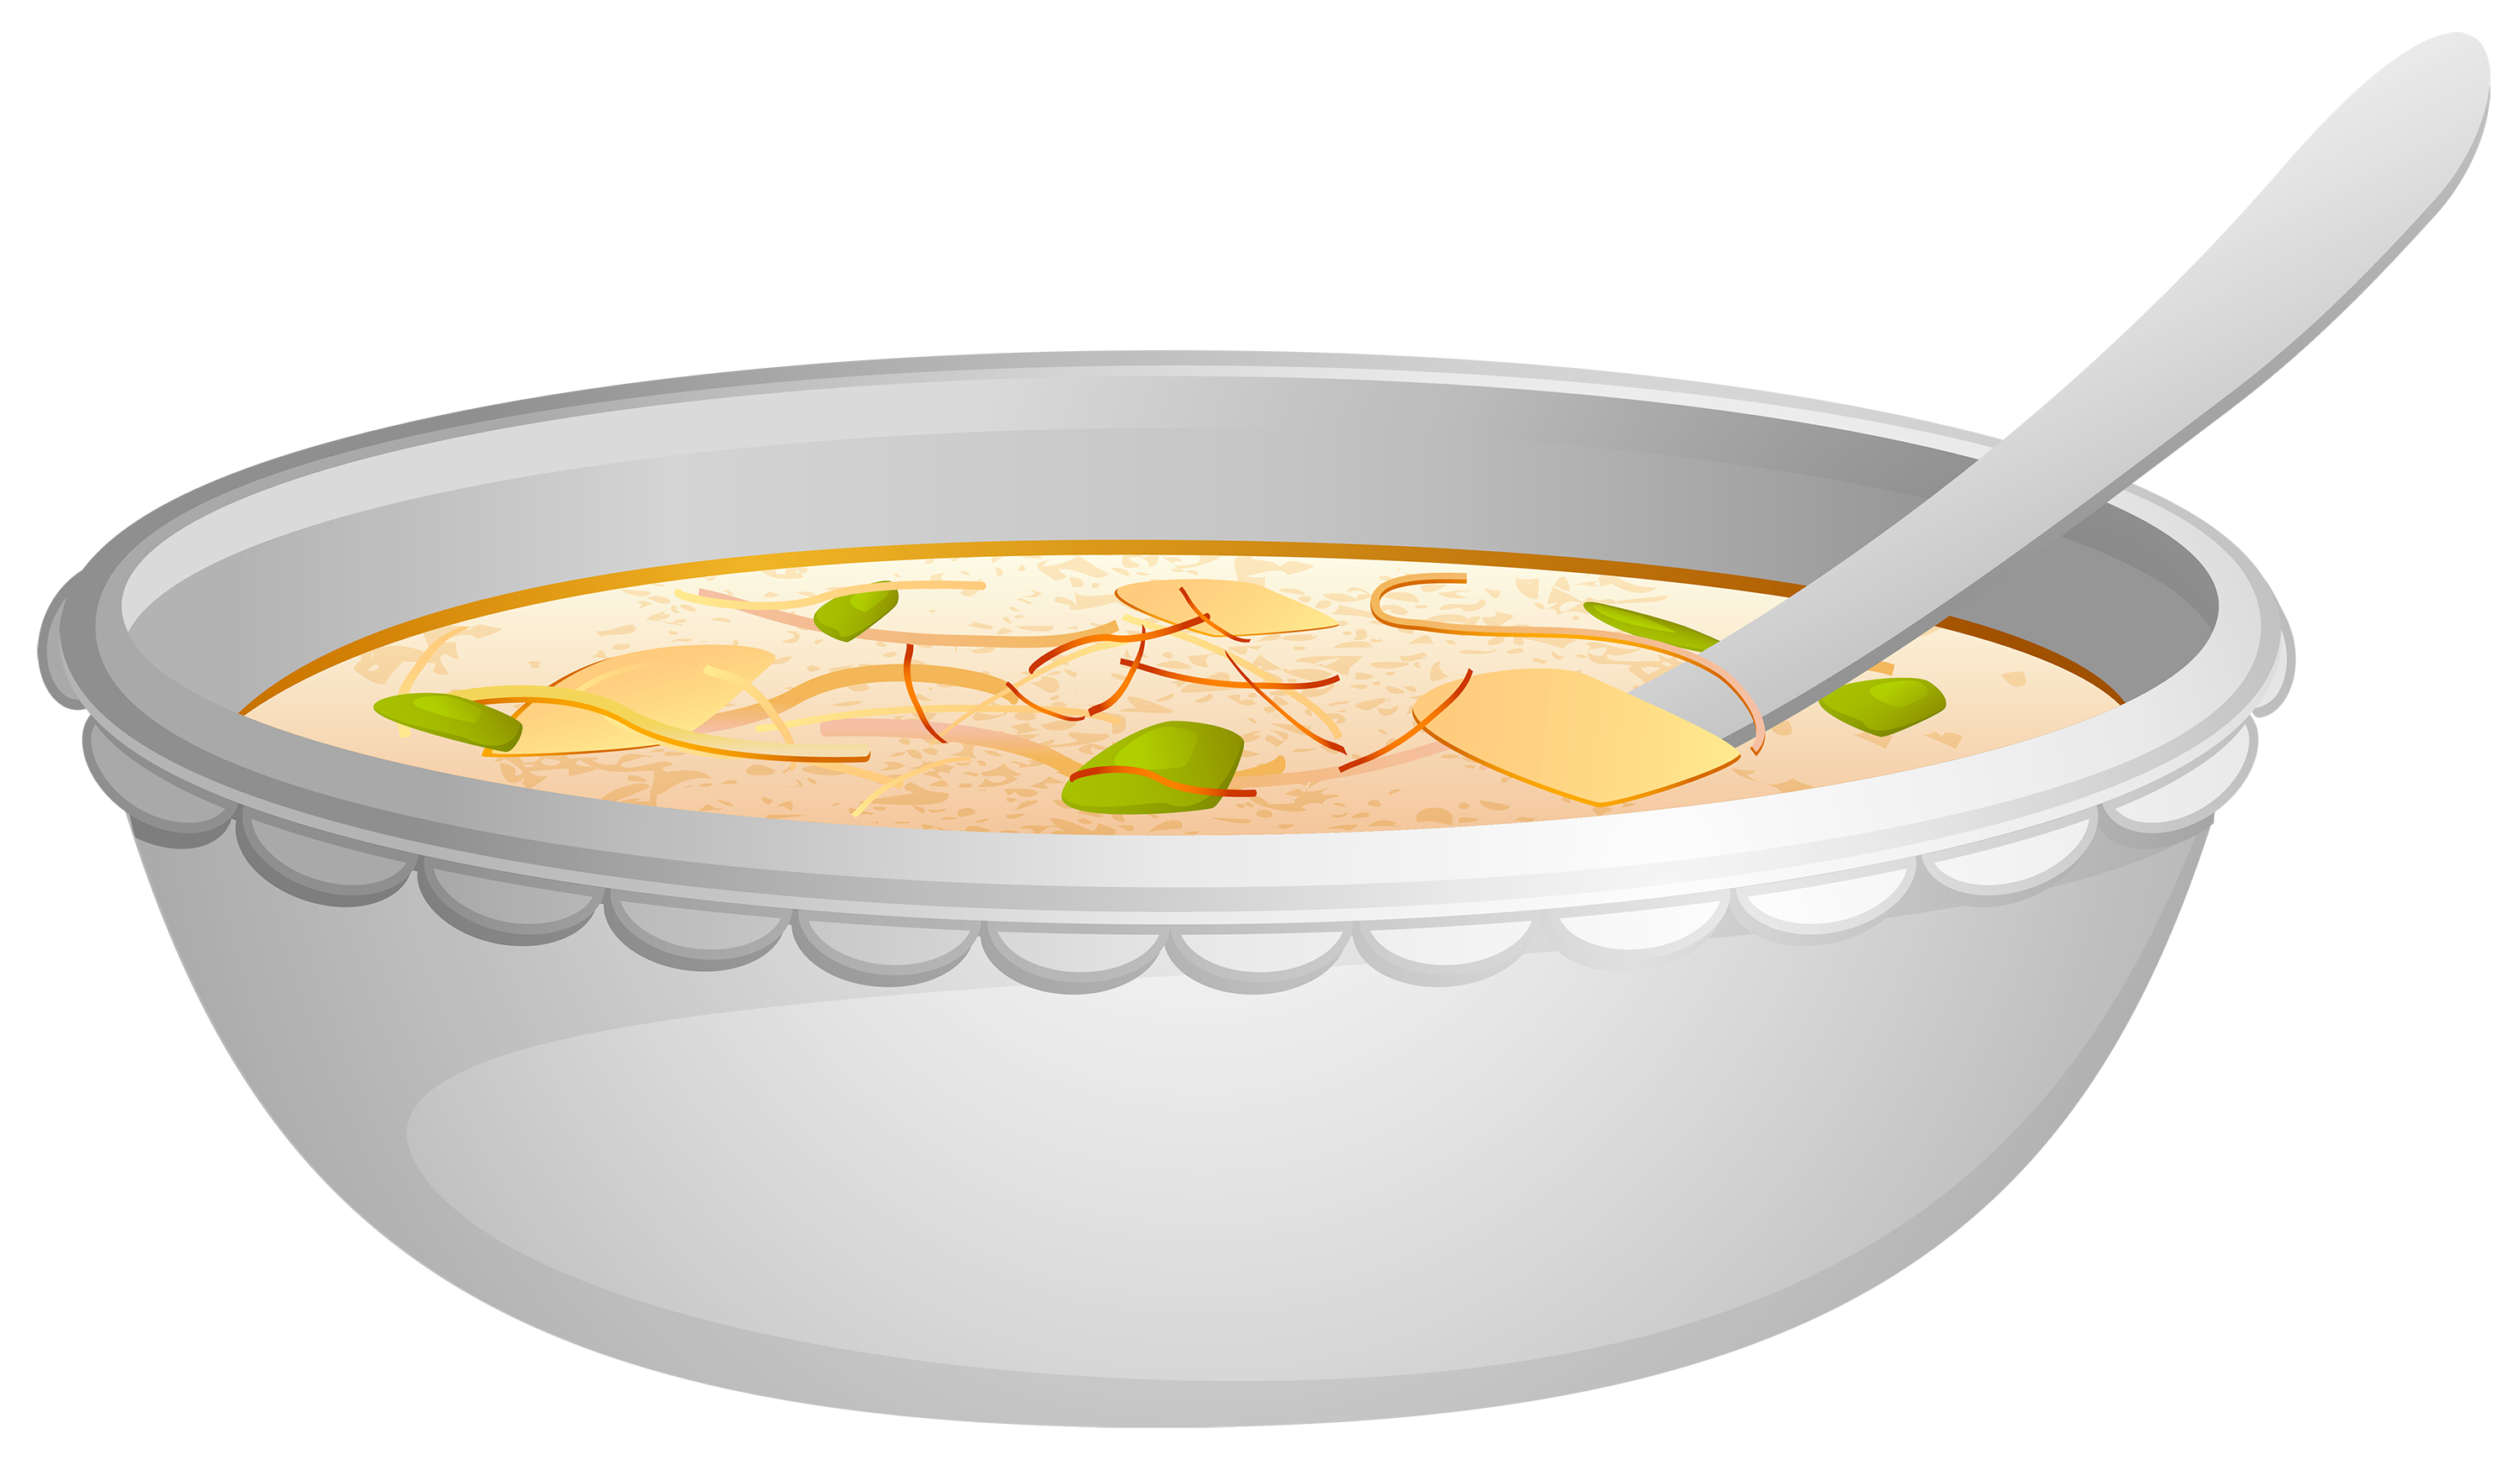 Soup Clipart Pictures image #43882